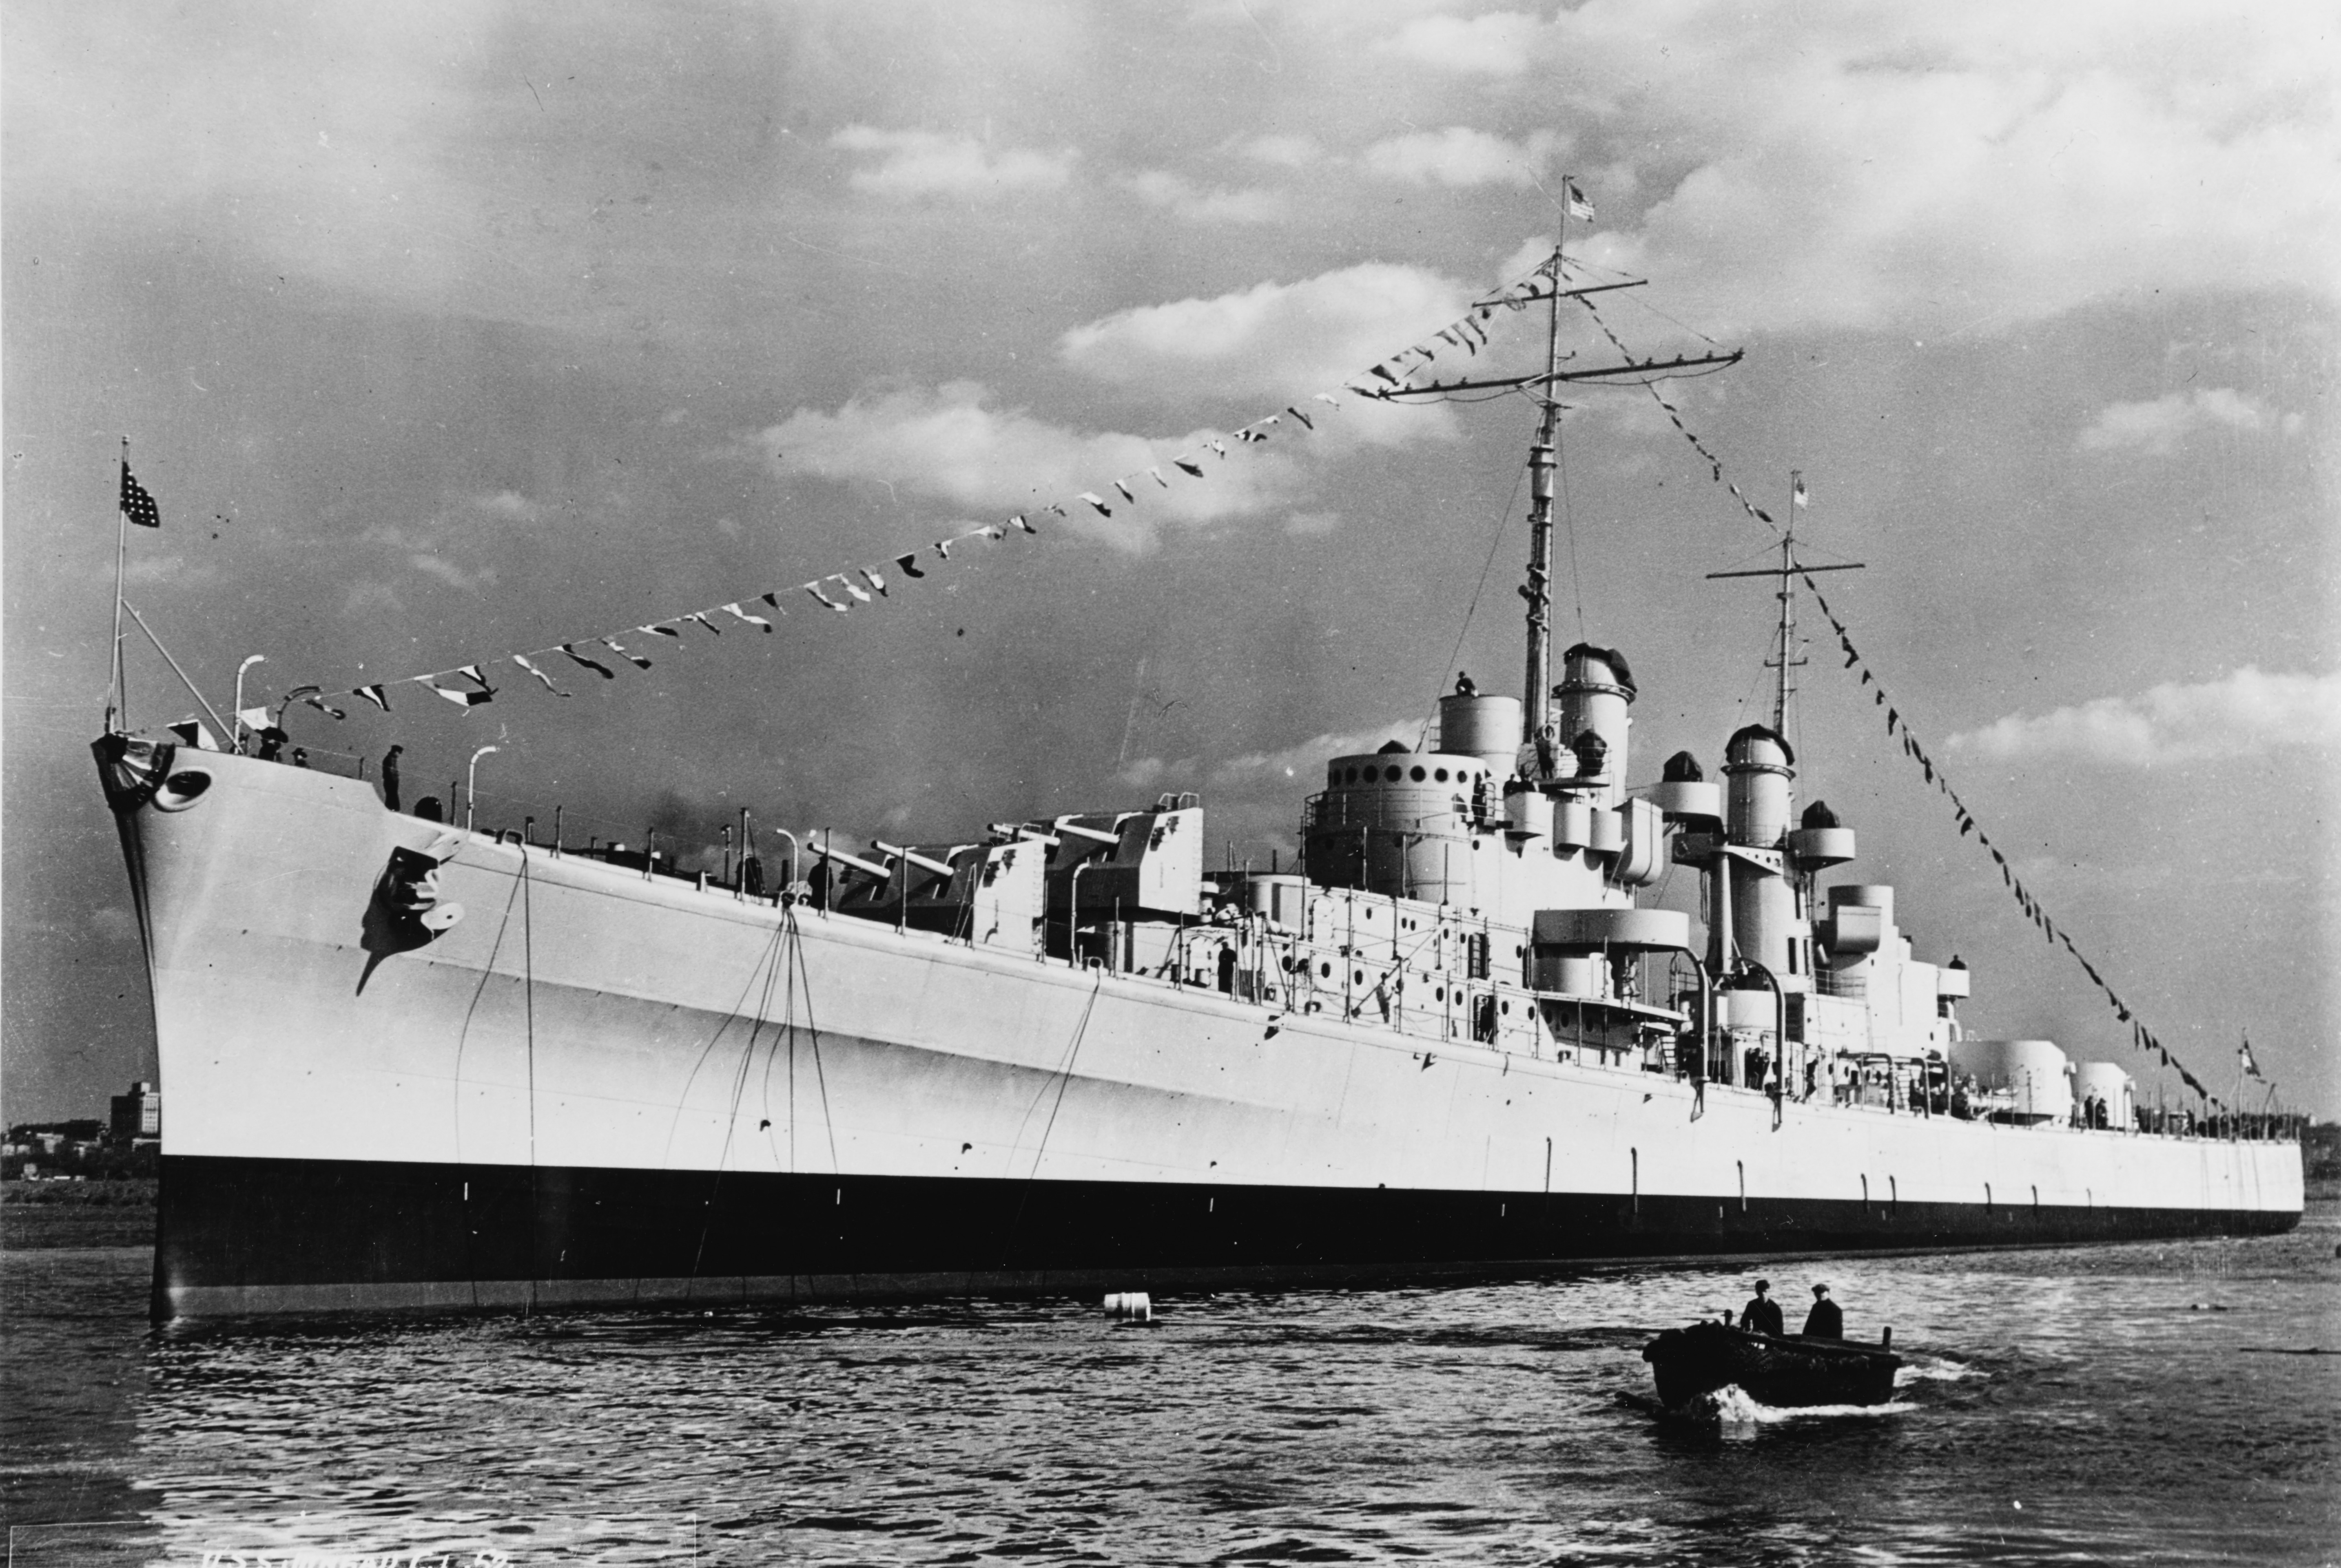 Wreckage of Sullivan brothers' USS Juneau found on St. Patrick's Day